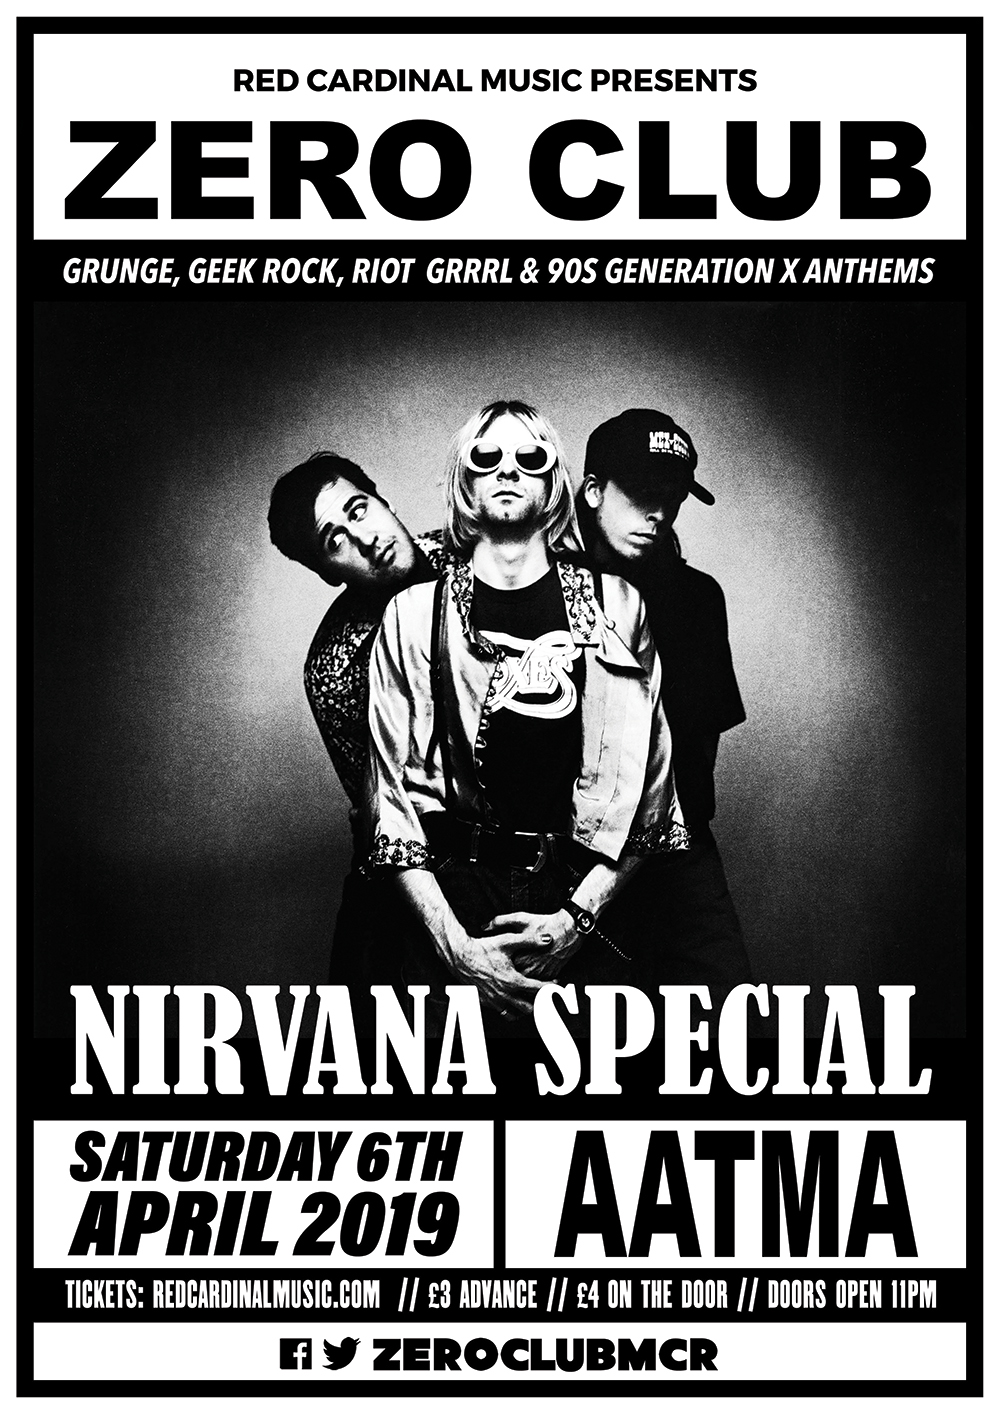 Zero Club Poster Nirvana Special - Apr 19 - Poster - Red Cardinal Music